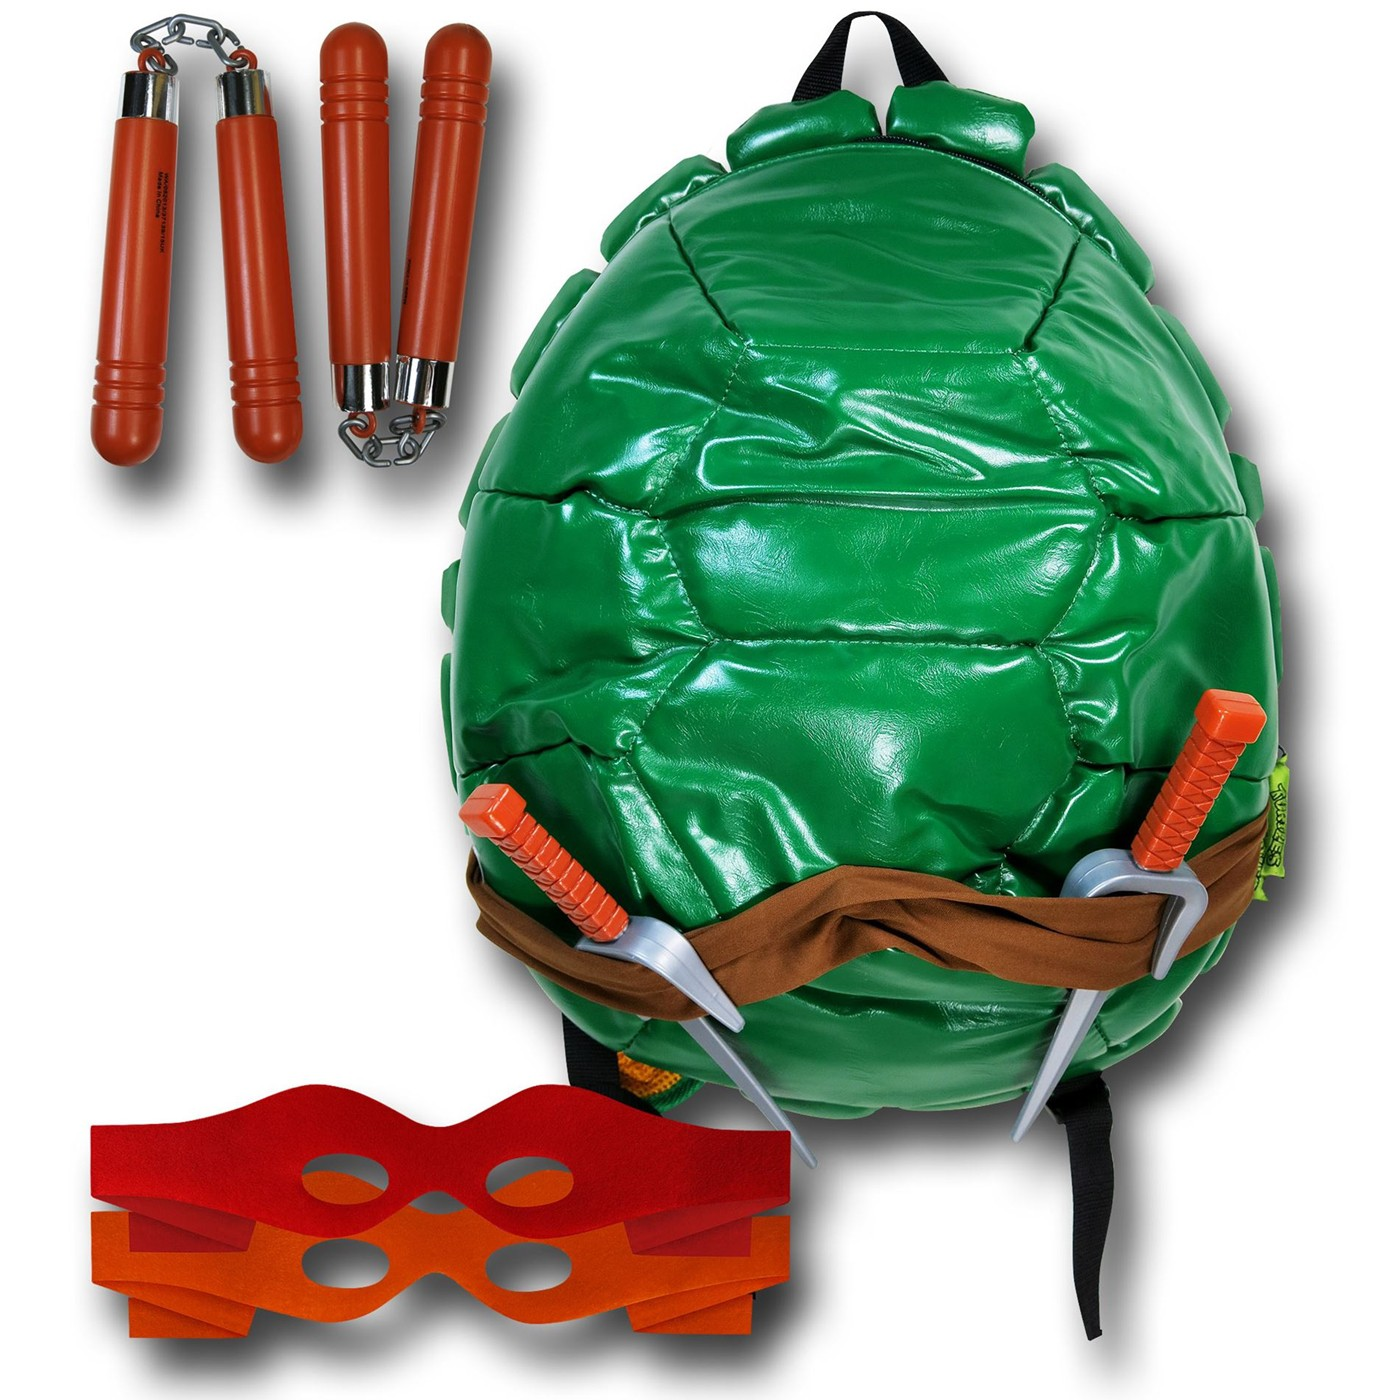 TMNT Turtle Shell Backpack with Masks & Weapons